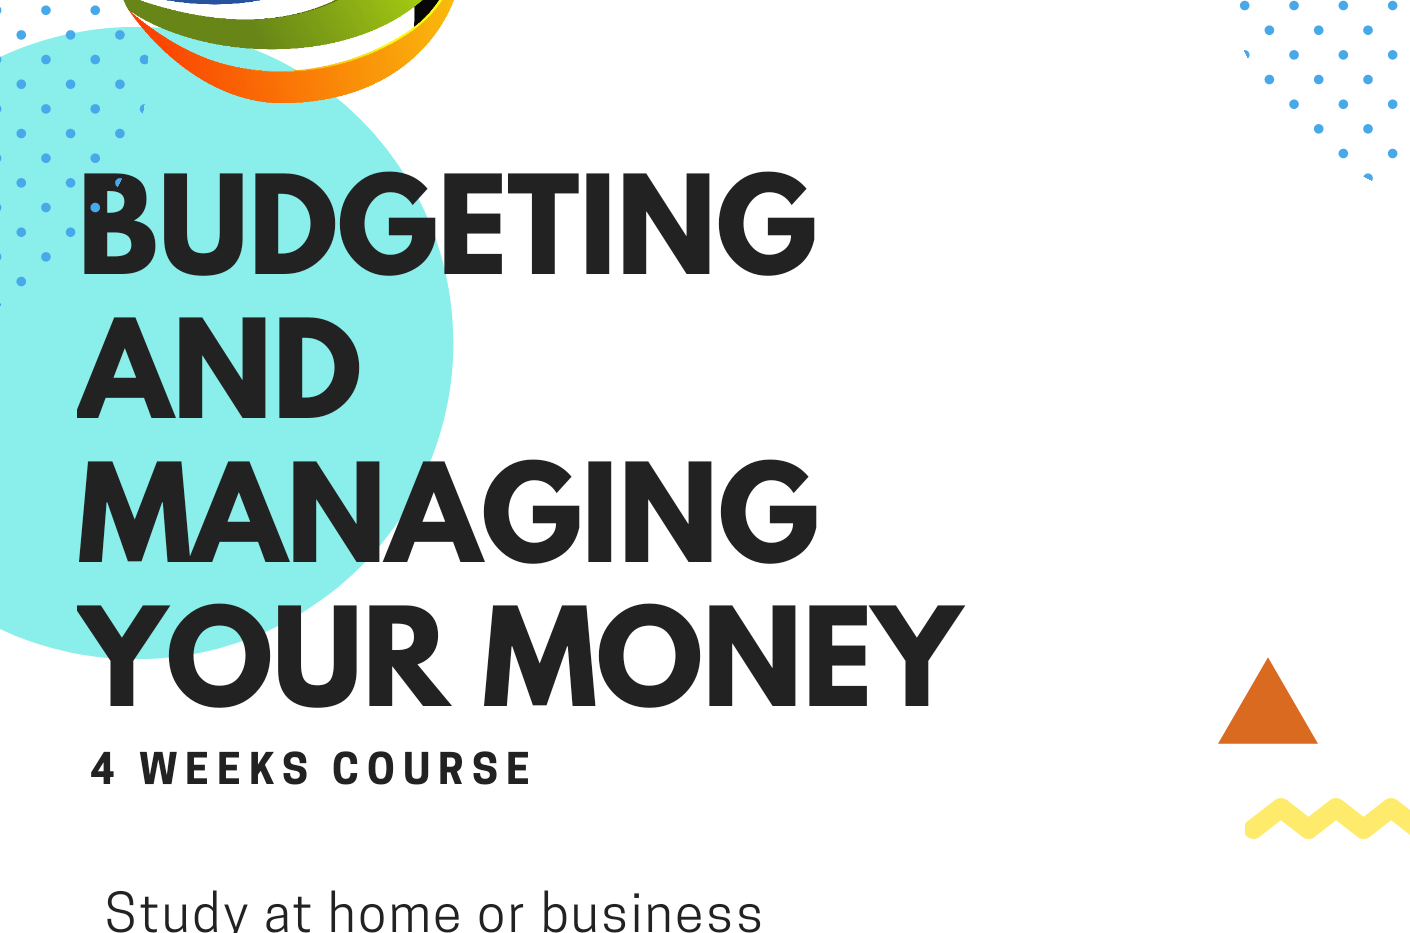 budgeting and managing finance